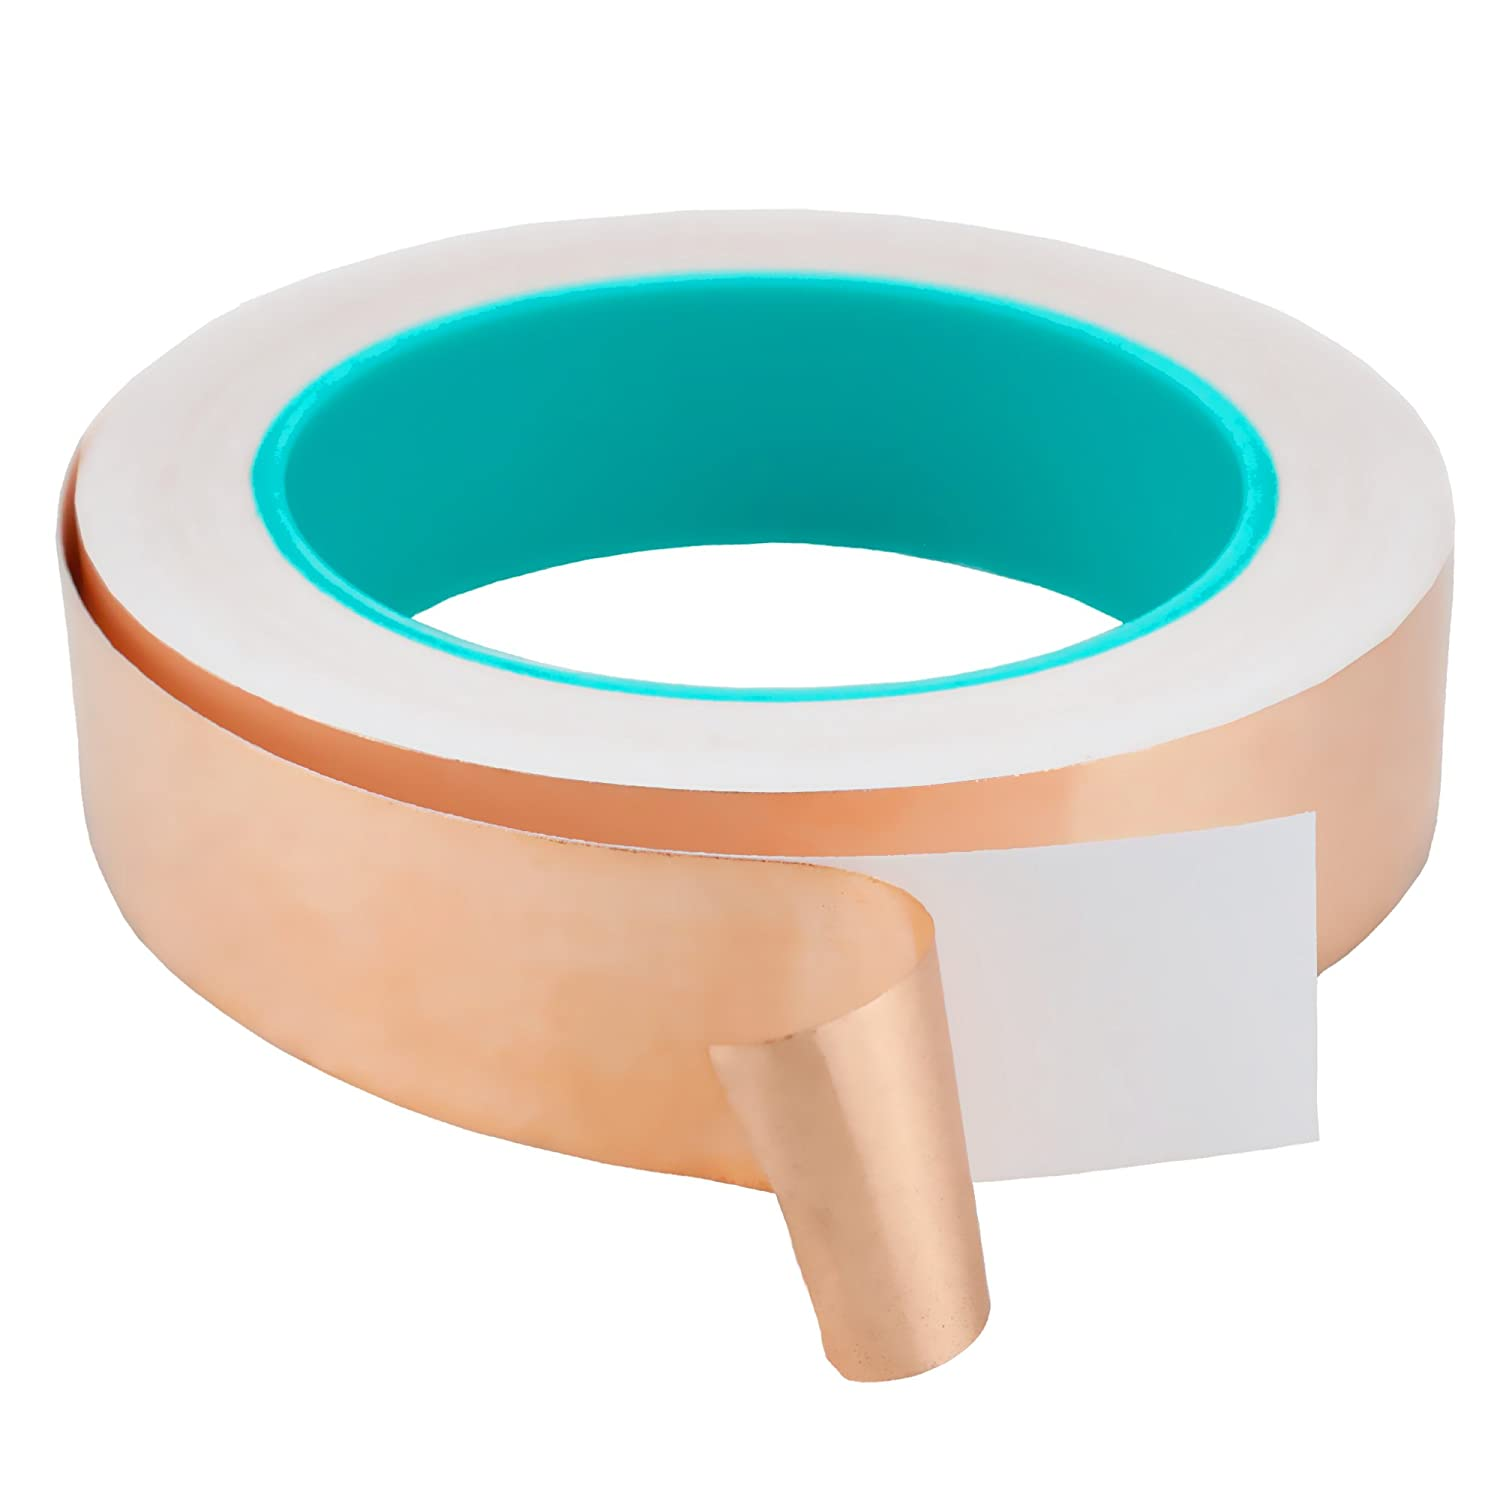 1 Inch x 21.87 Yards Copper Foil Tape with Double Side Conductive Adhesive for Slug Repellent, Crafts, EMI Shielding, Electrical Repairs, Paper Circuits,etc